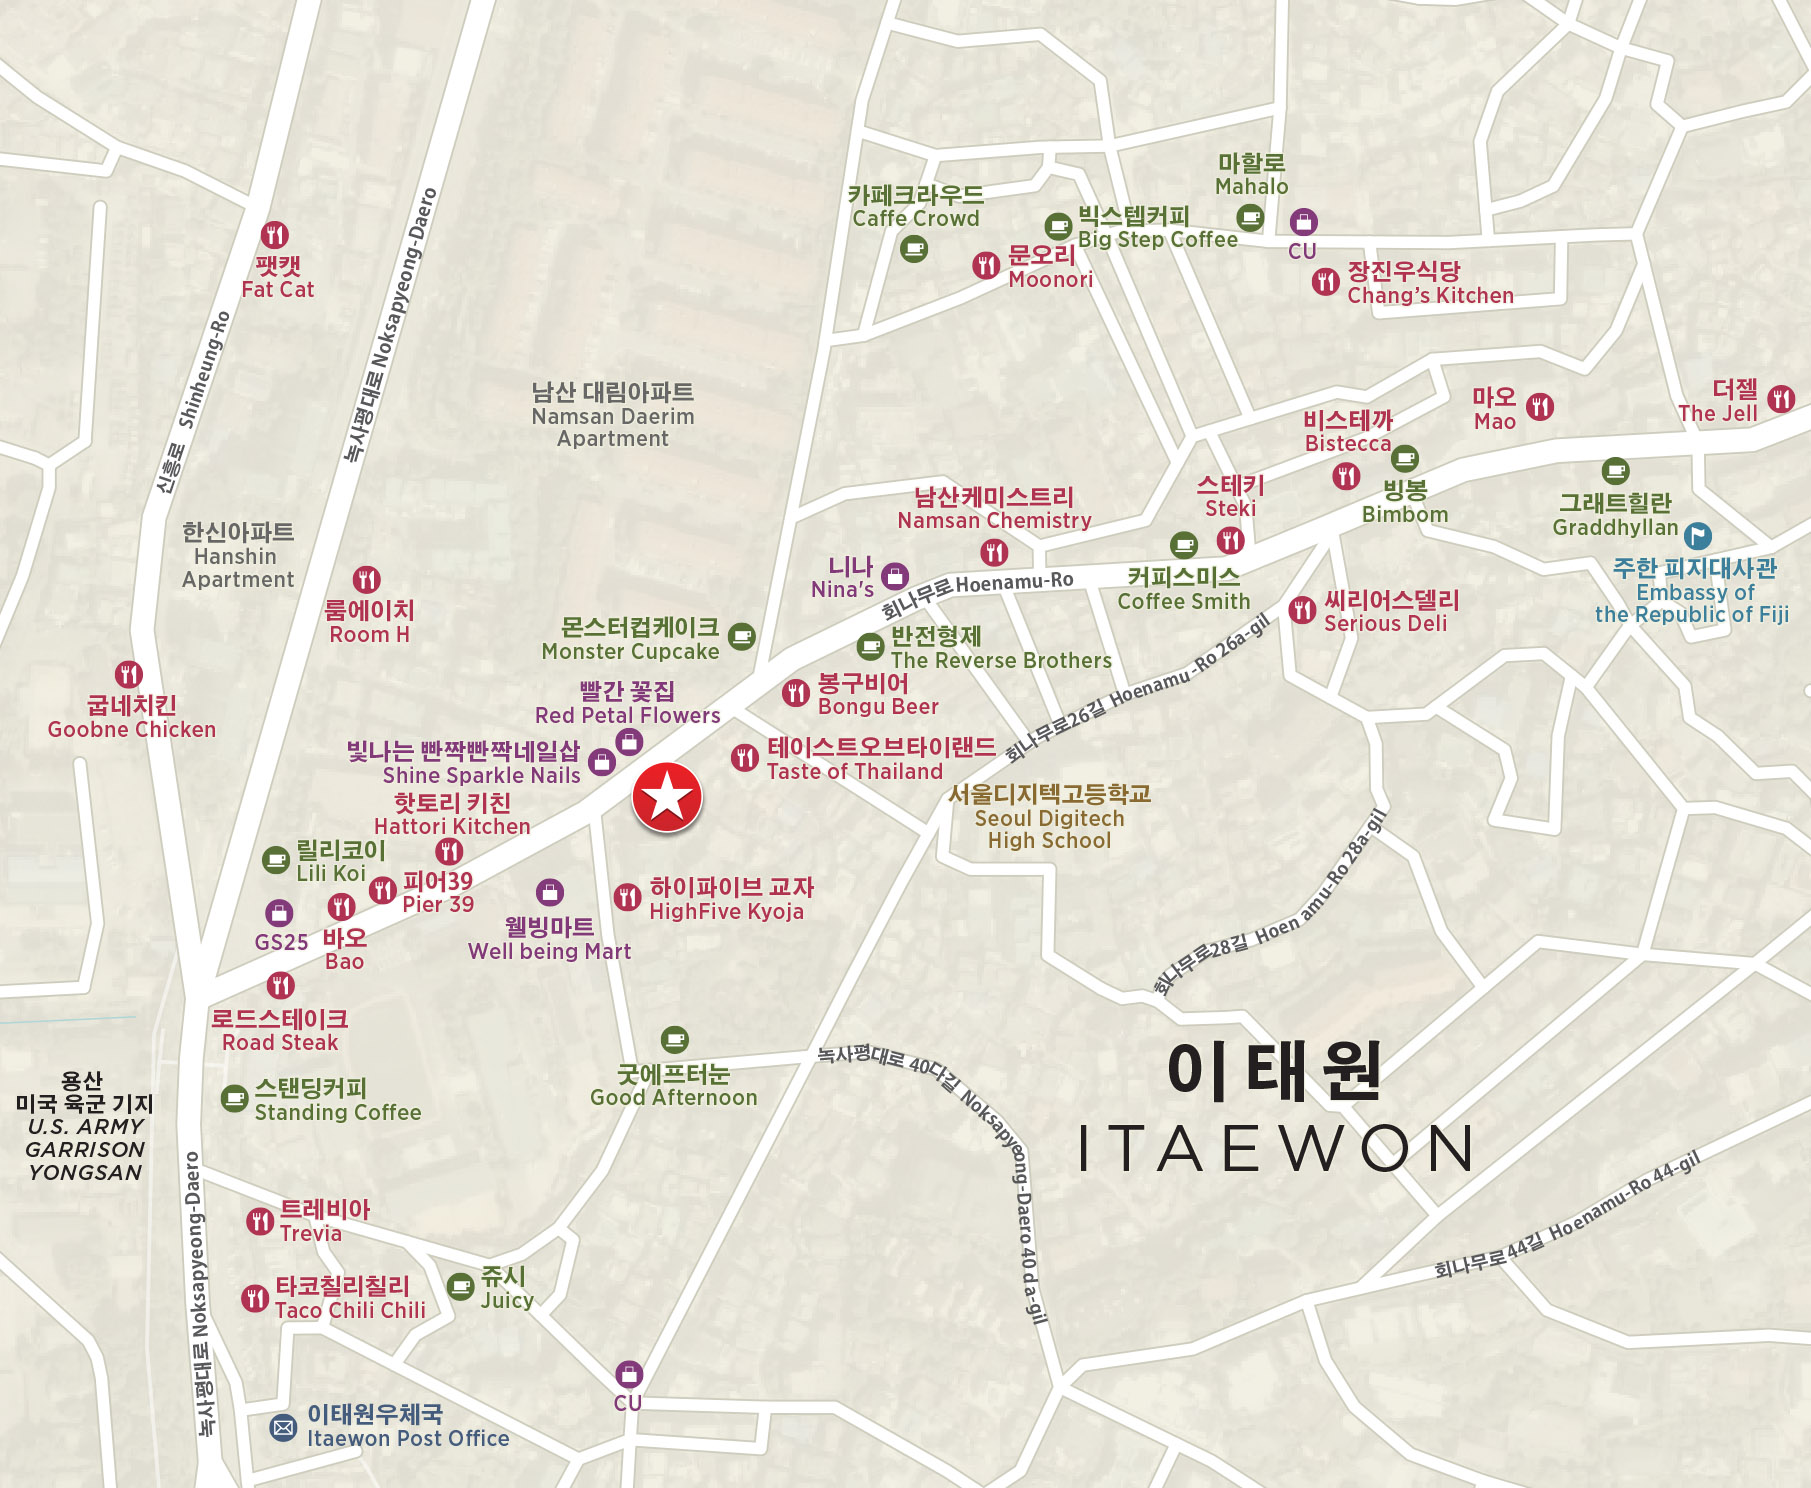 Itaewon Seoul South Korea Amenities Map.jpg